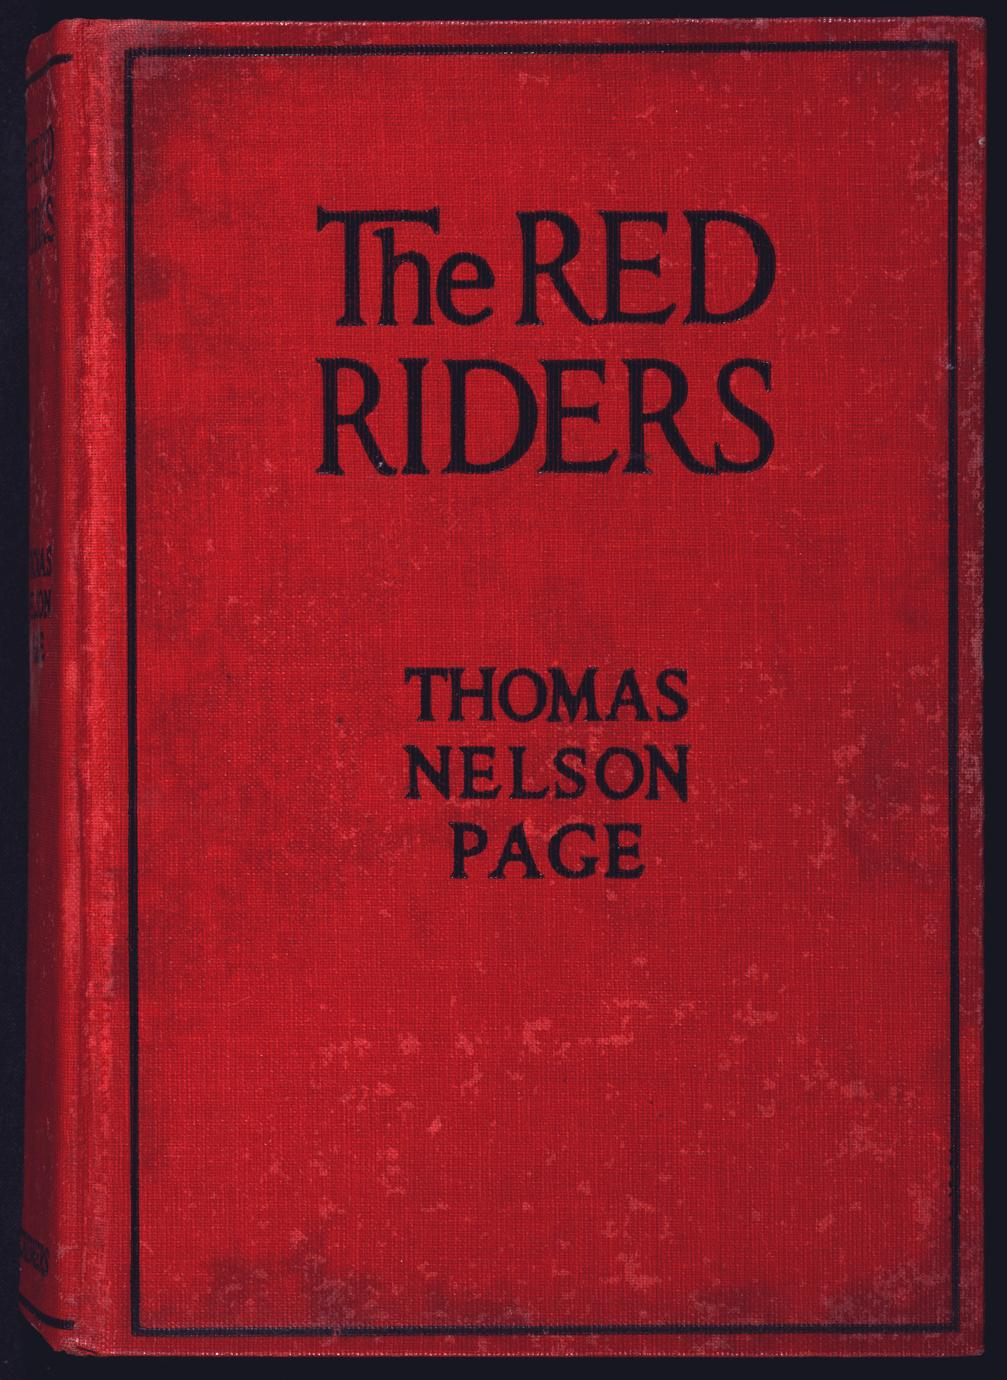 The red riders (1 of 2)